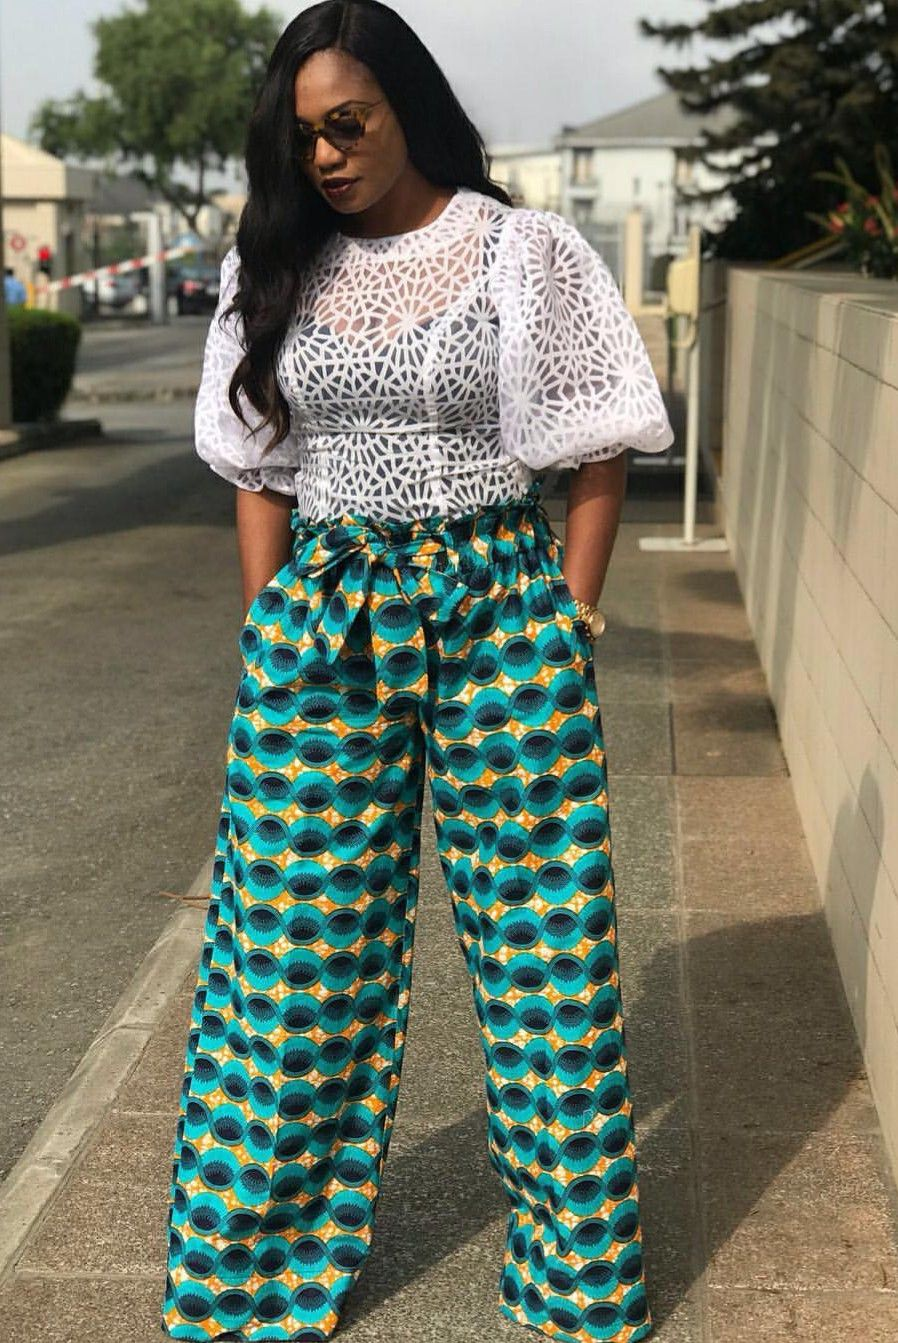 98c990847e0 Ankara Styles are one of the cogent ways to identify the culture and  traditions of the Africans. For the fact that the origin of Ankara is not  from Afr.